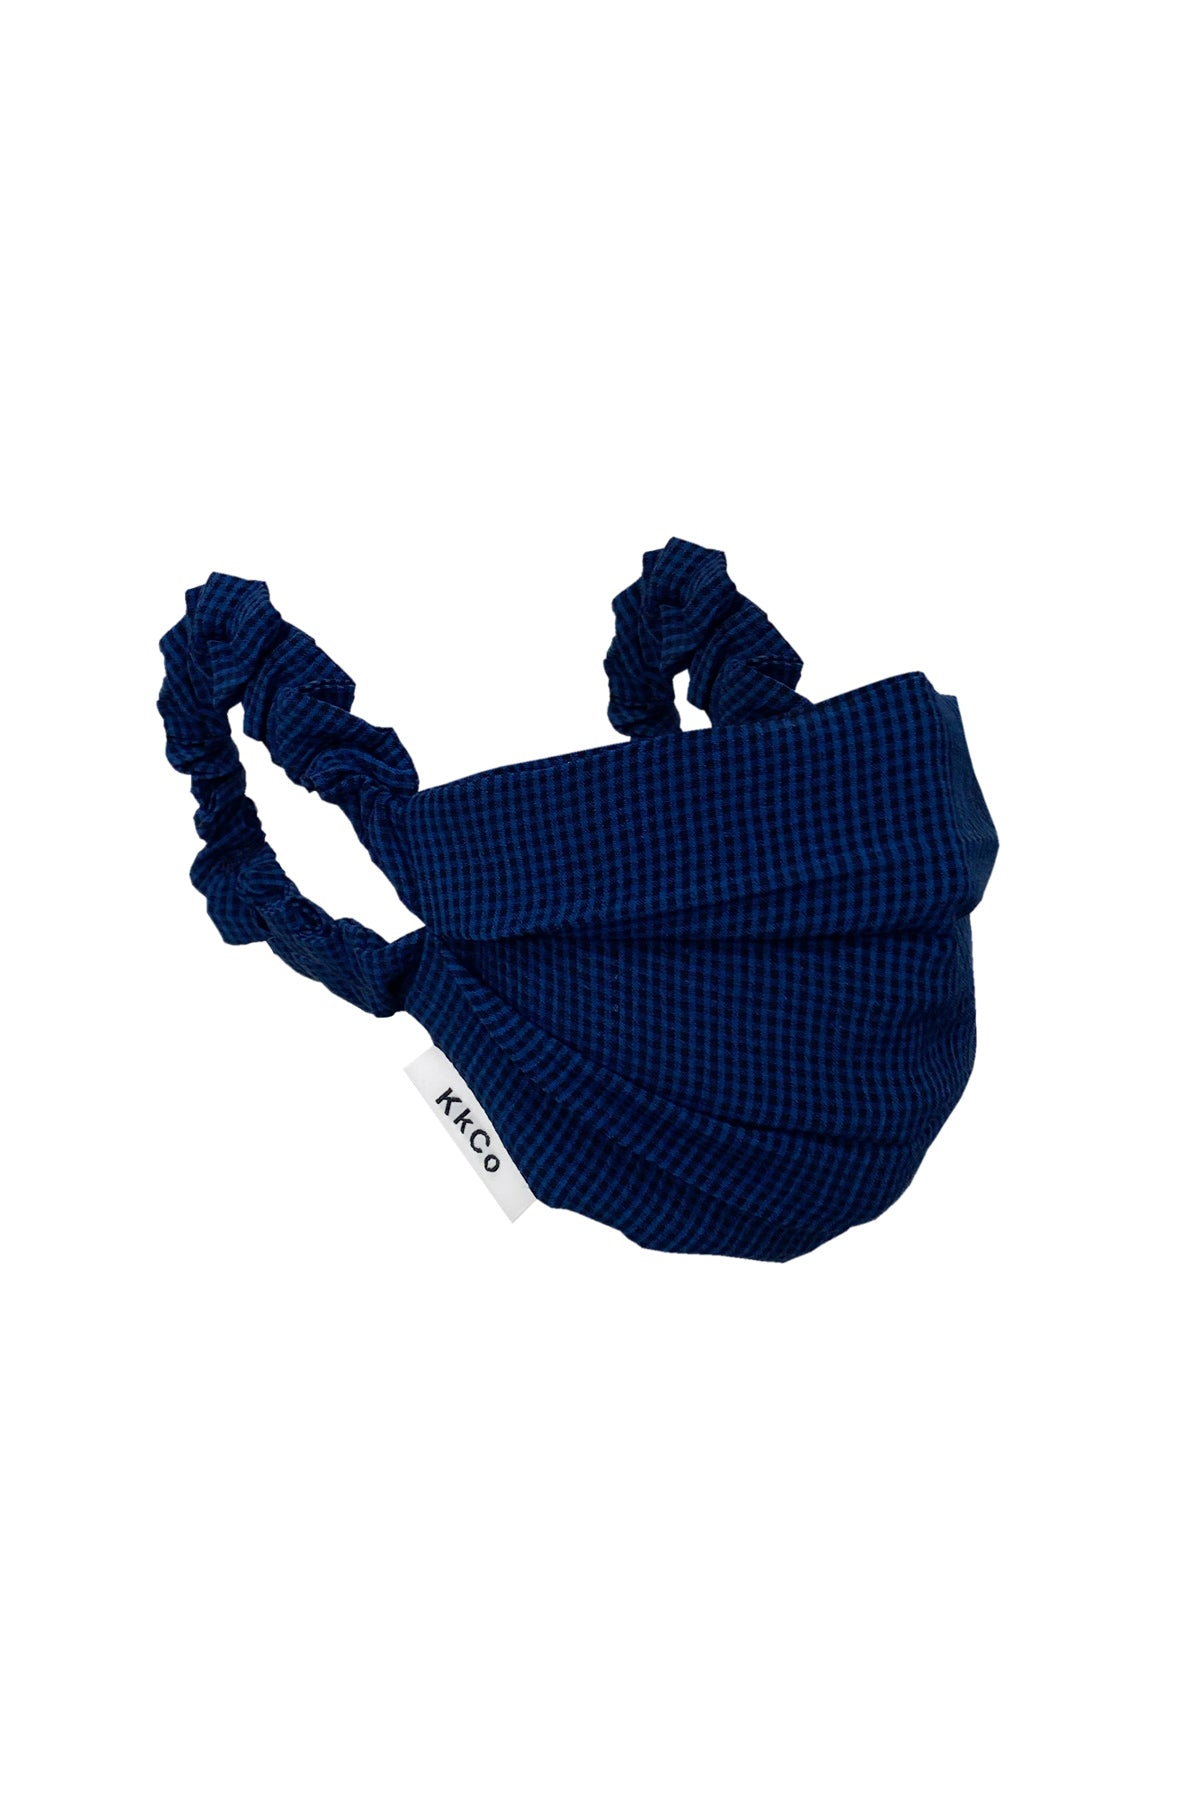 Face Mask in Navy Check